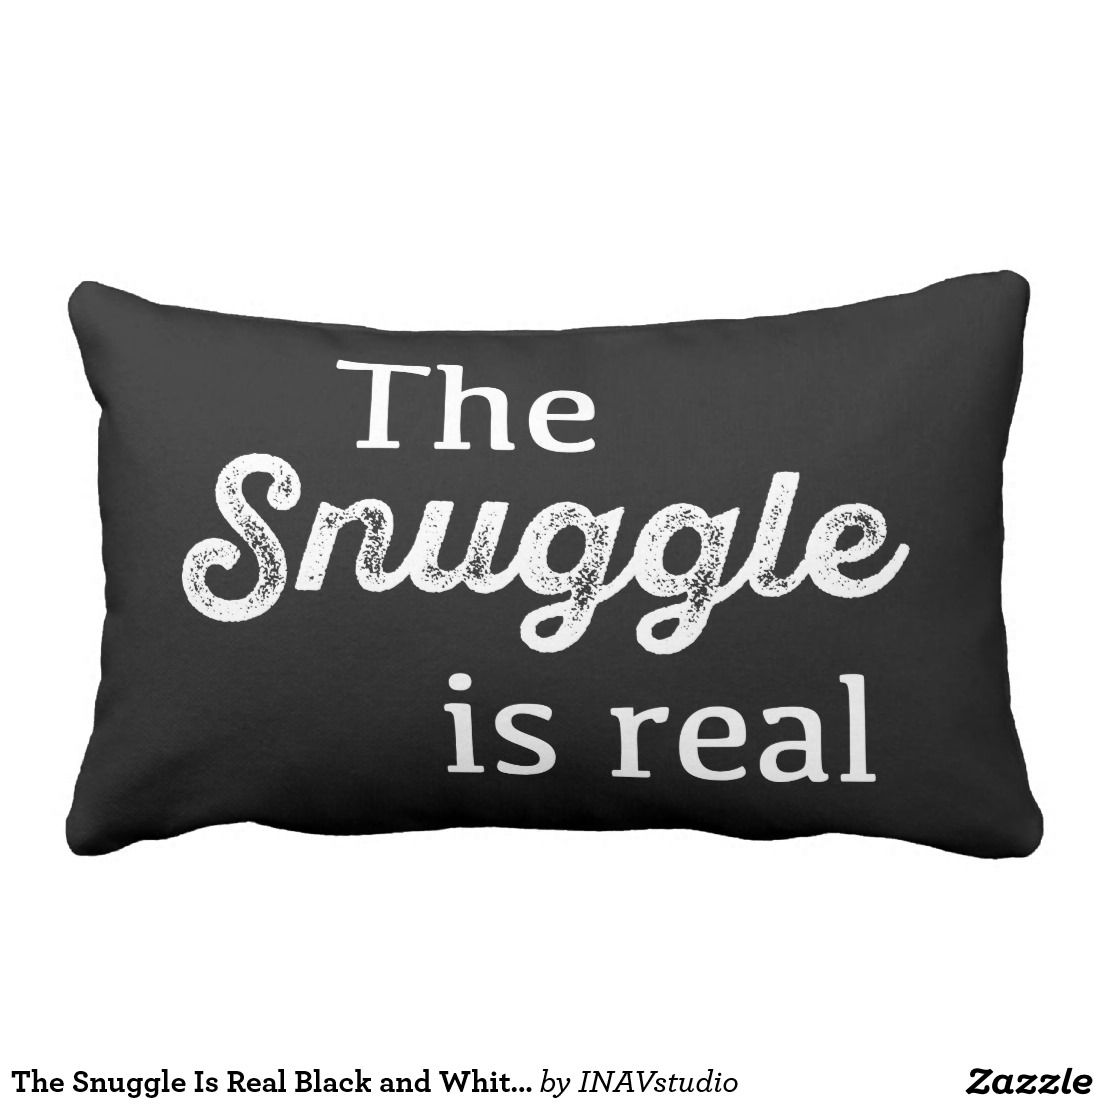 The Snuggle Is Real Black and White Funny Throw Pillow